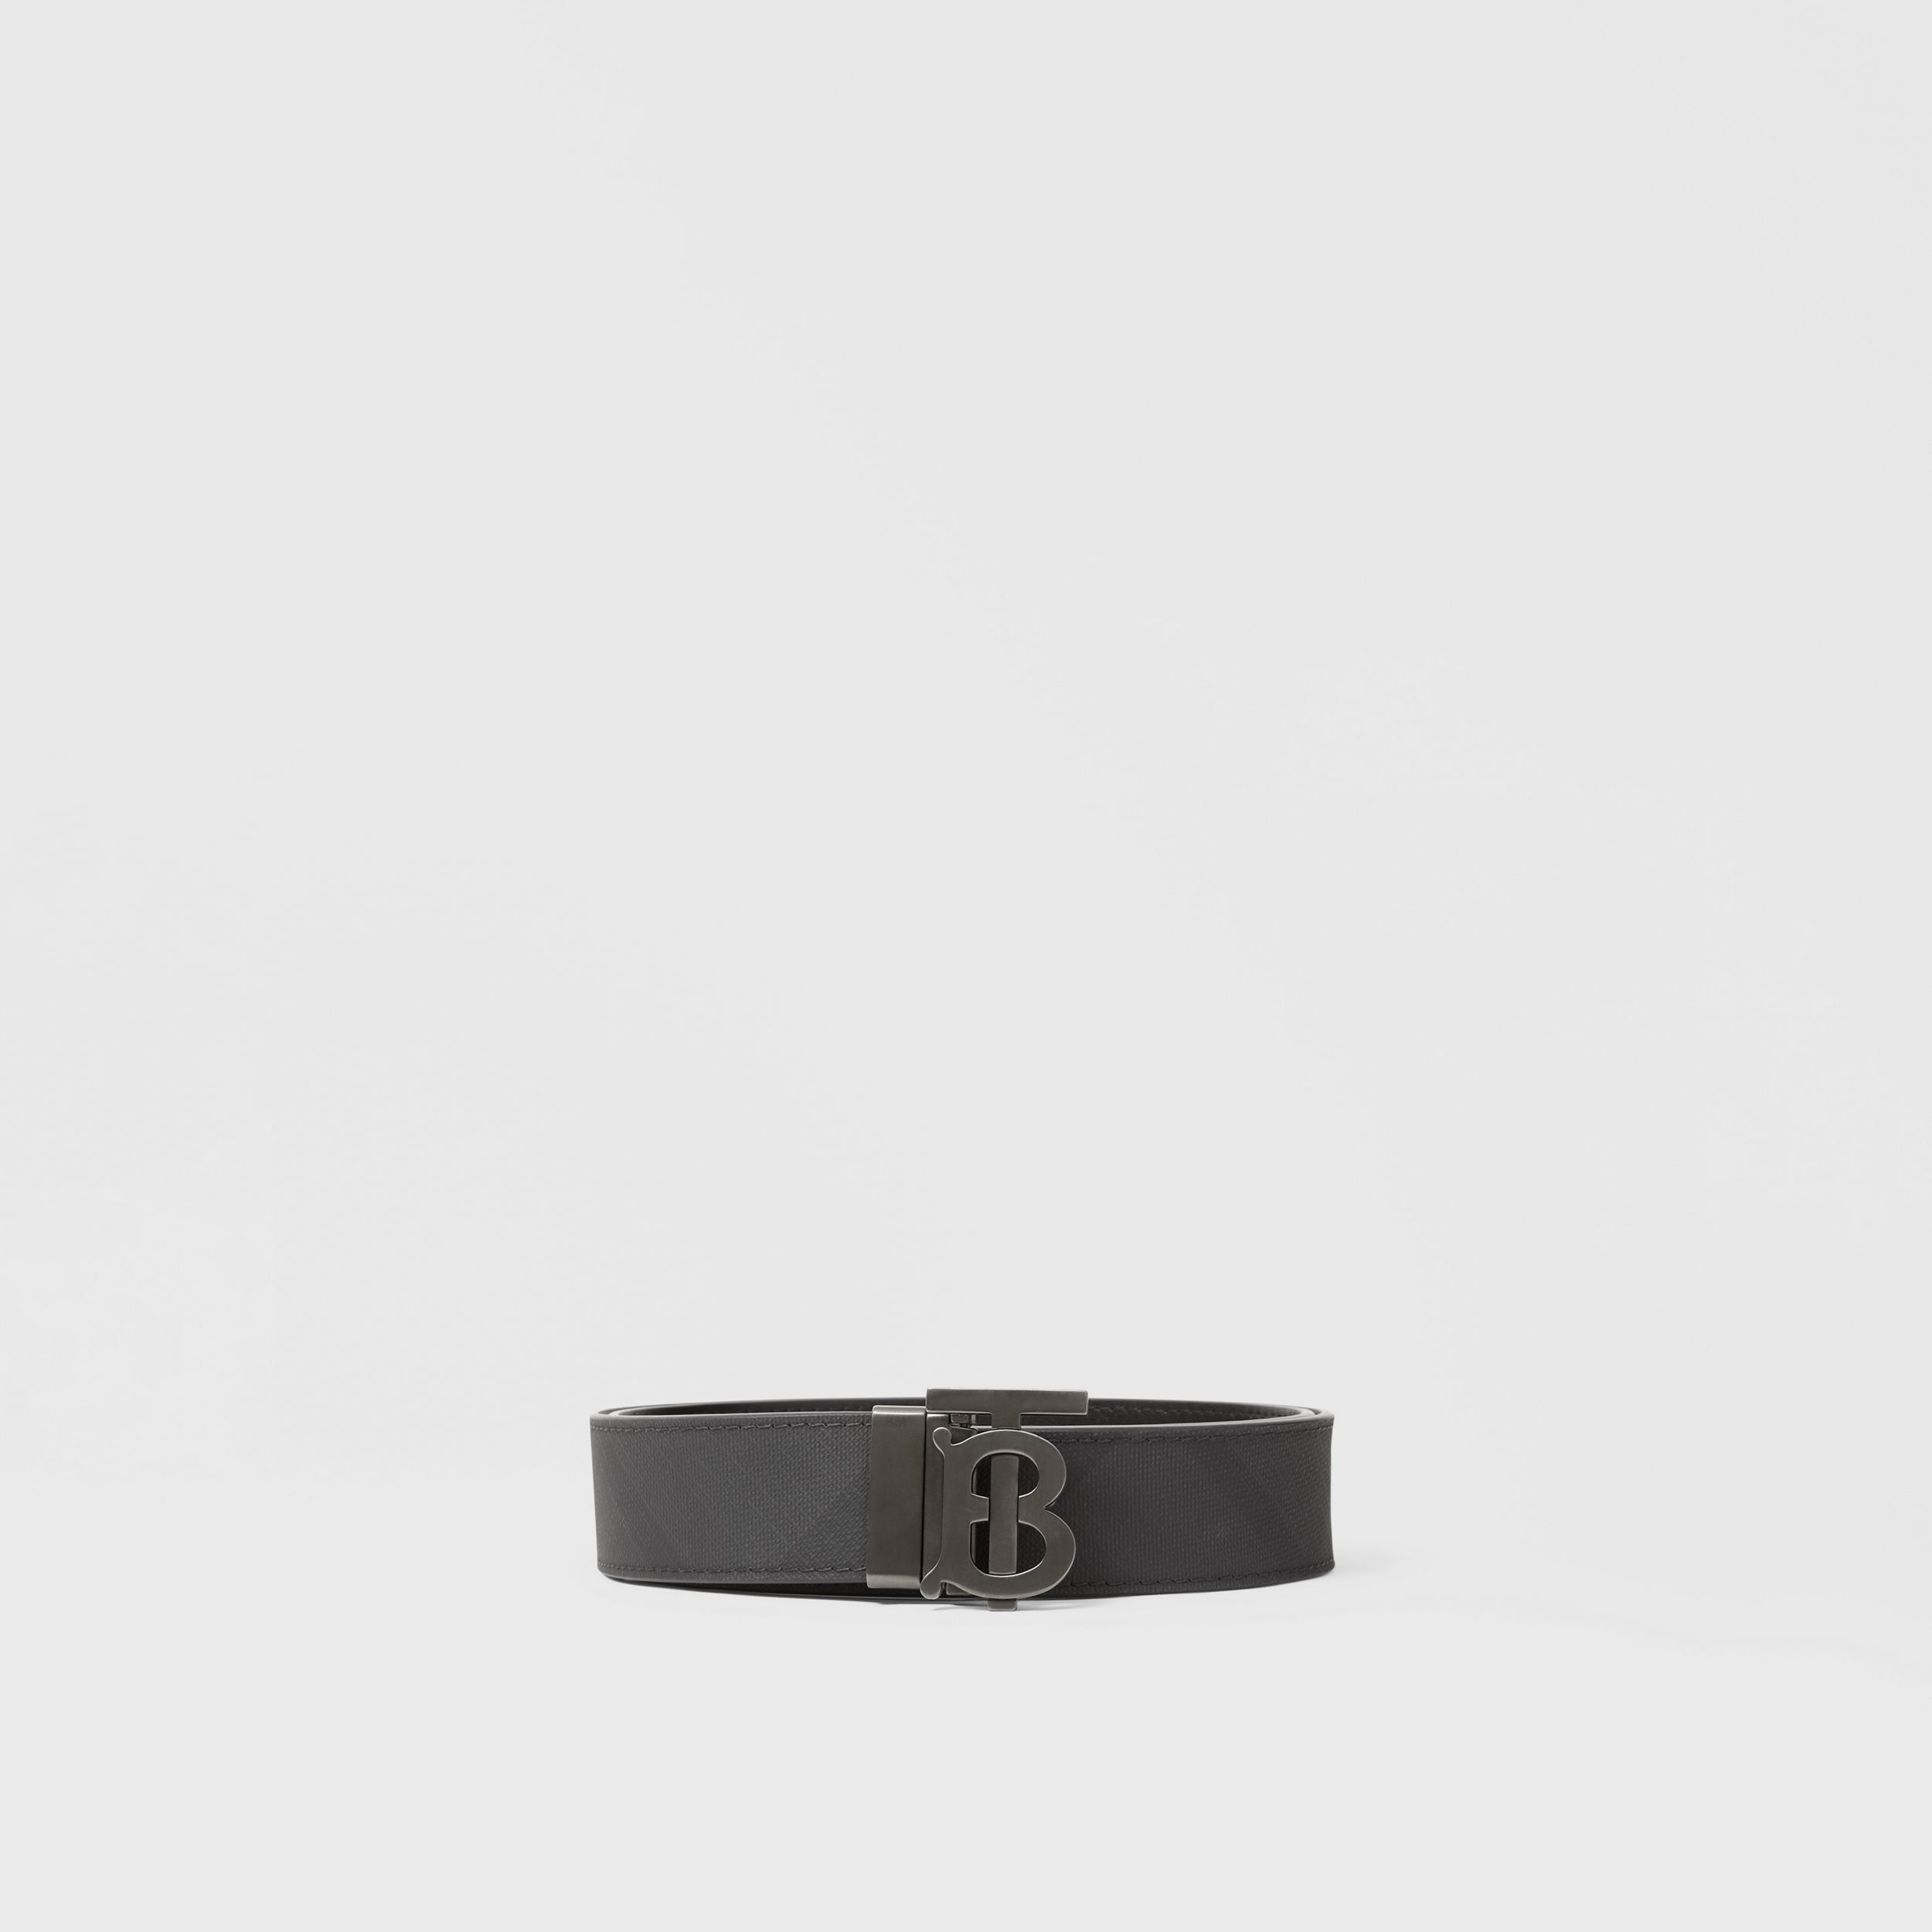 Reversible Monogram Motif London Check Belt in Dark Charcoal - Men | Burberry Canada - 4